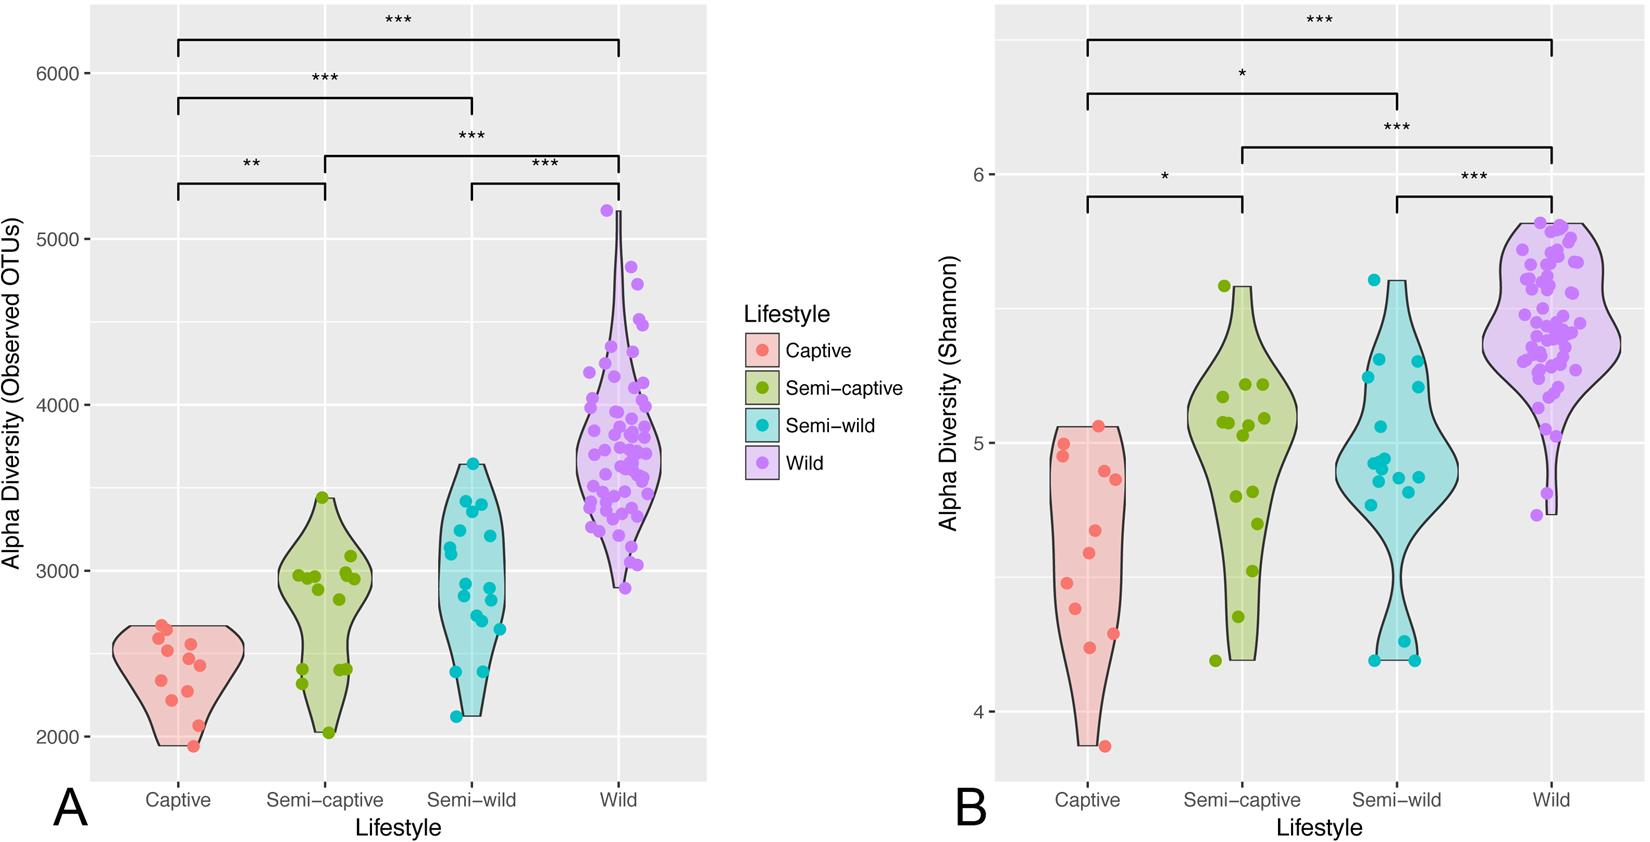 Associations Between Nutrition, Gut Microbiome, and Health in A